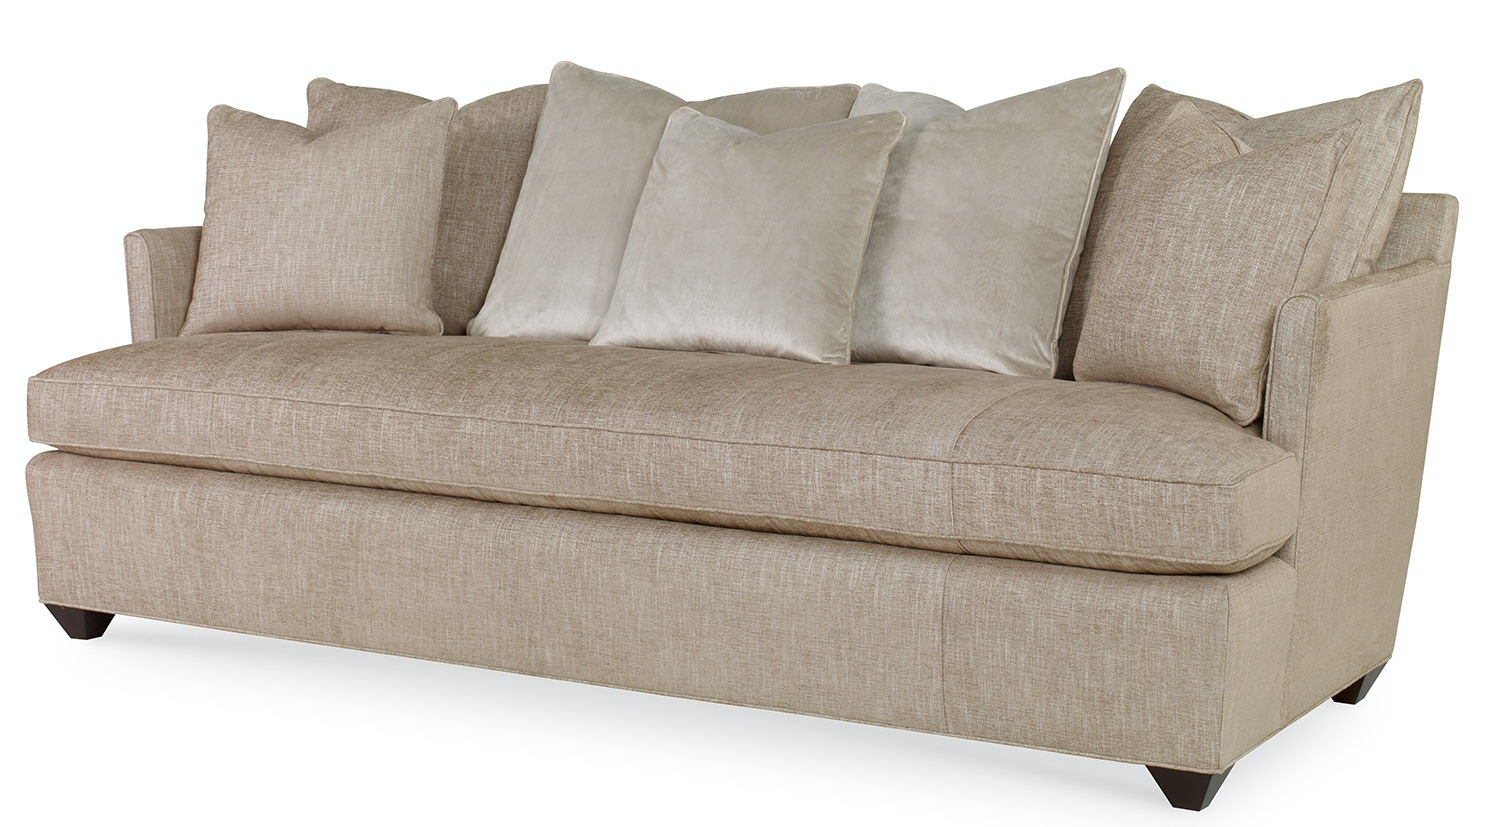 Kravet Mousston Bench Seat Sofa B9016 2